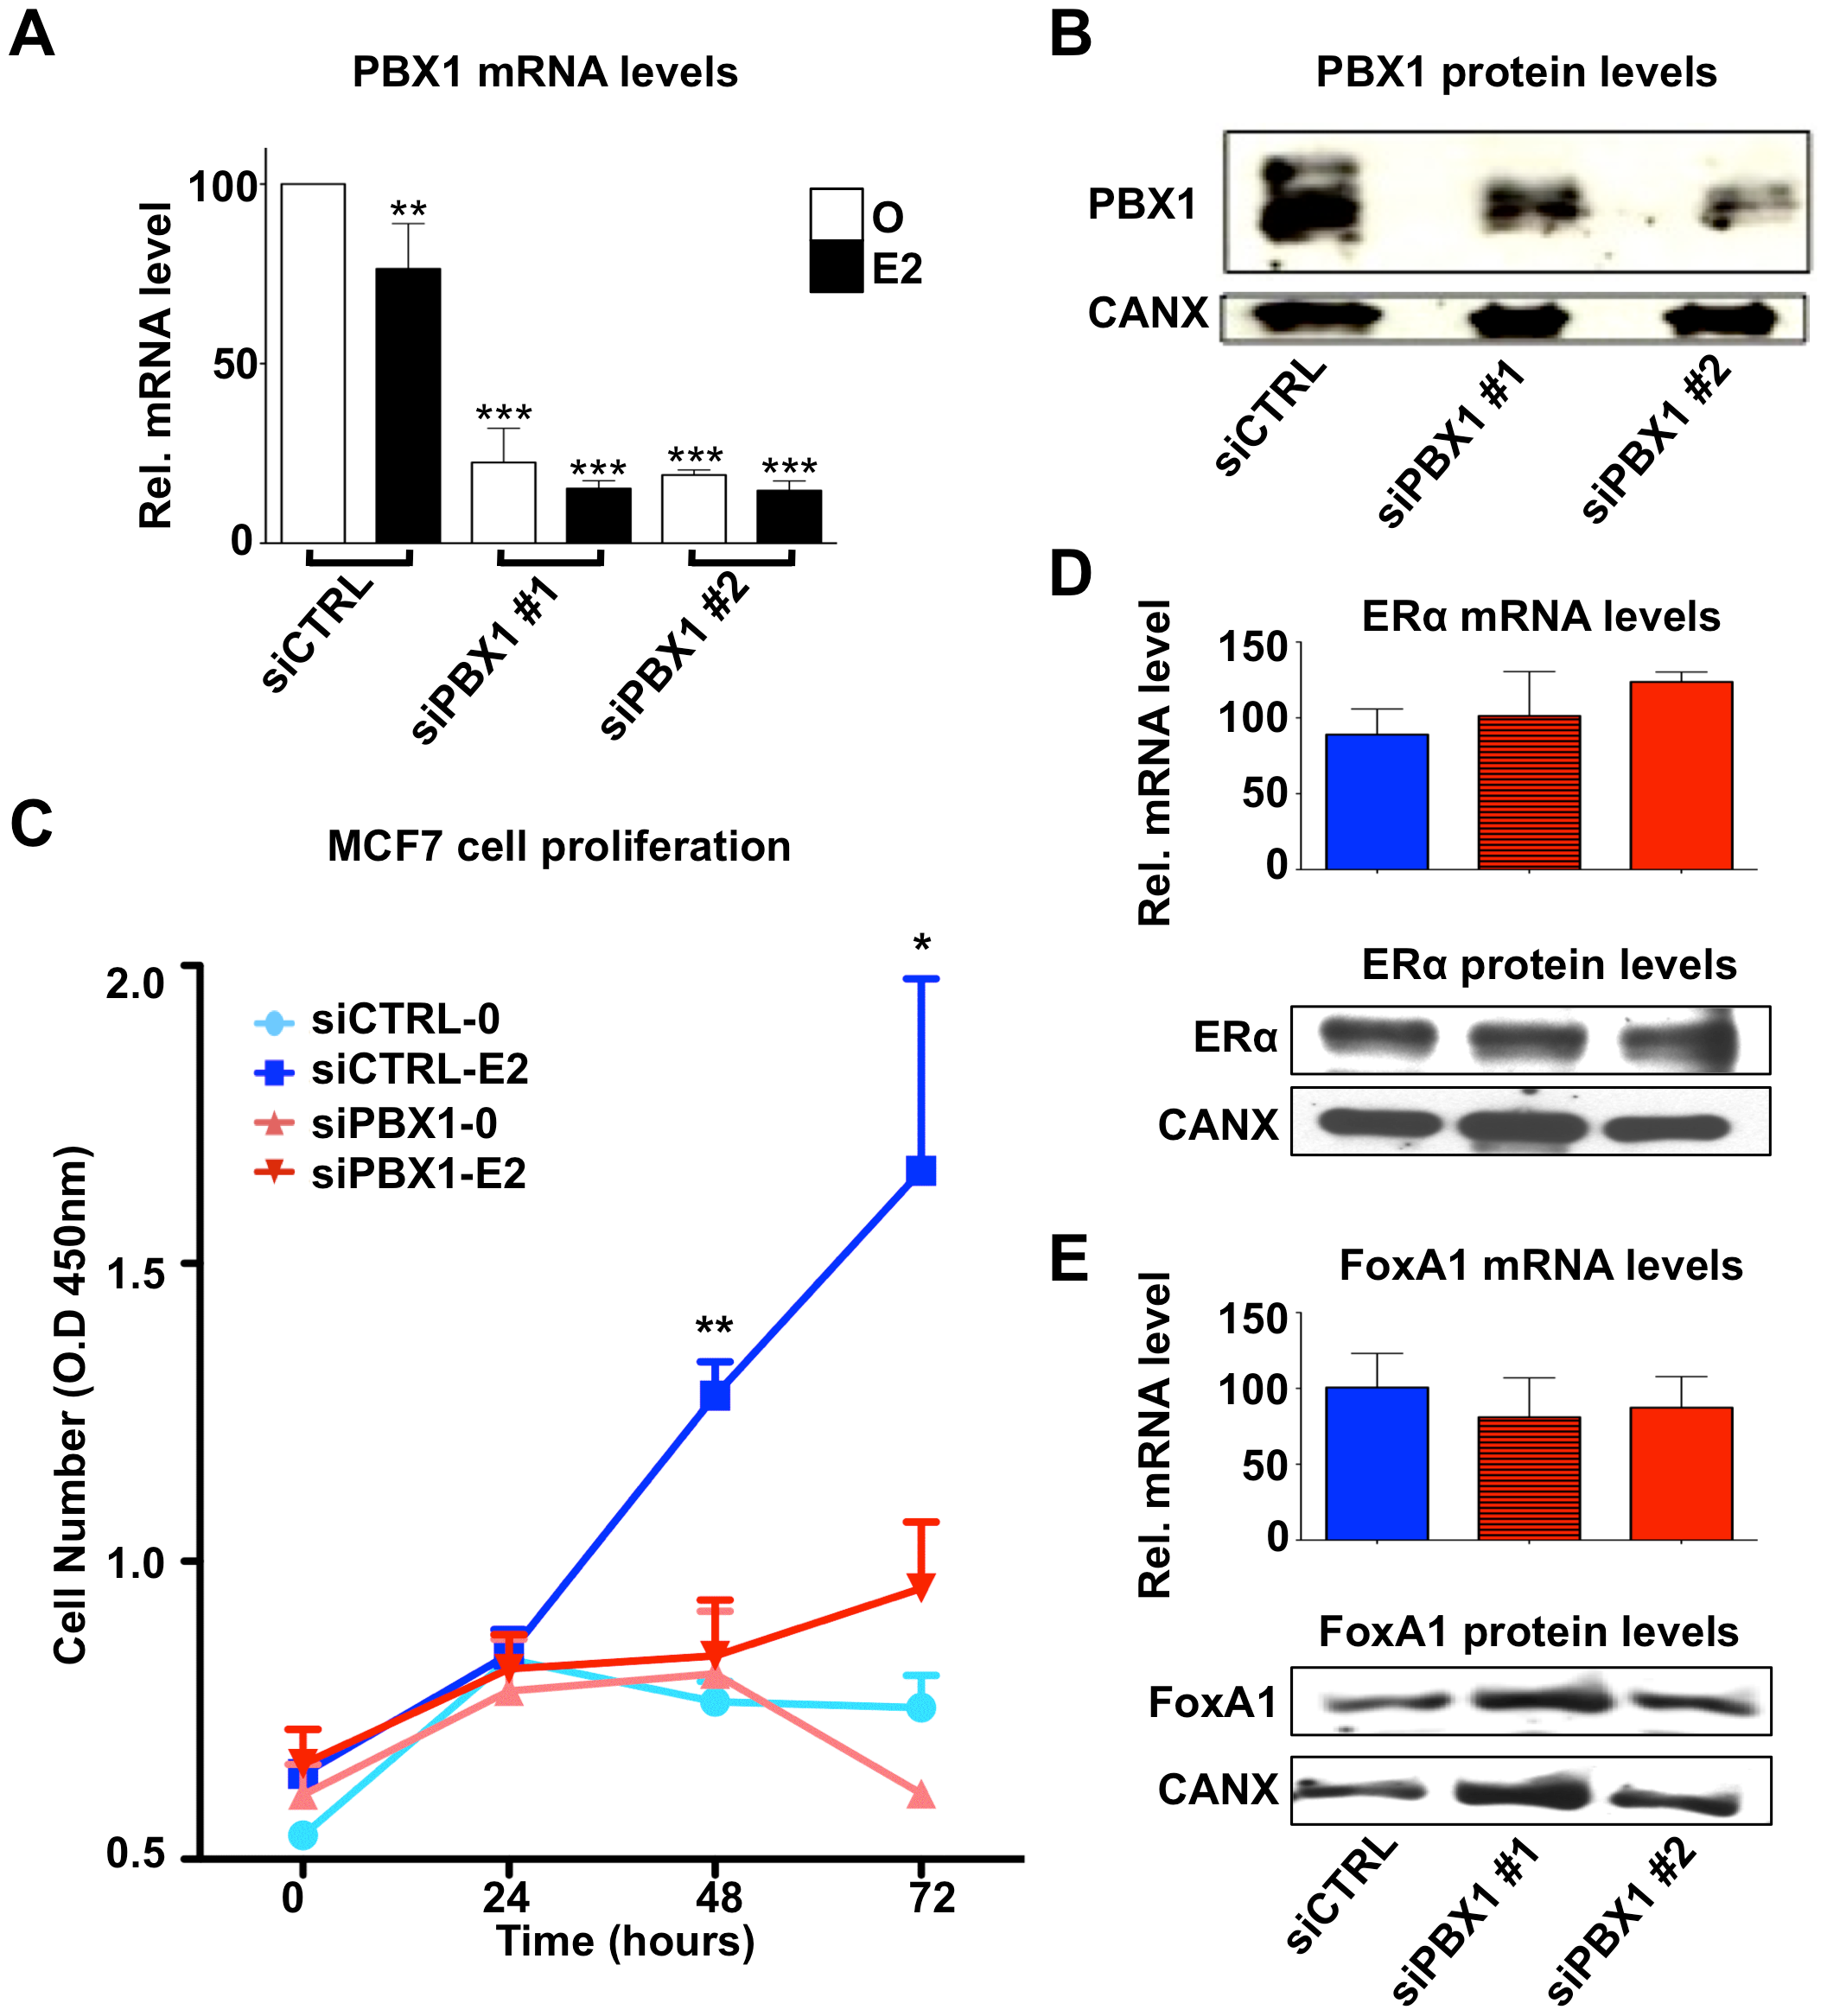 PBX1 is required for the estrogen response in MCF7 cells.